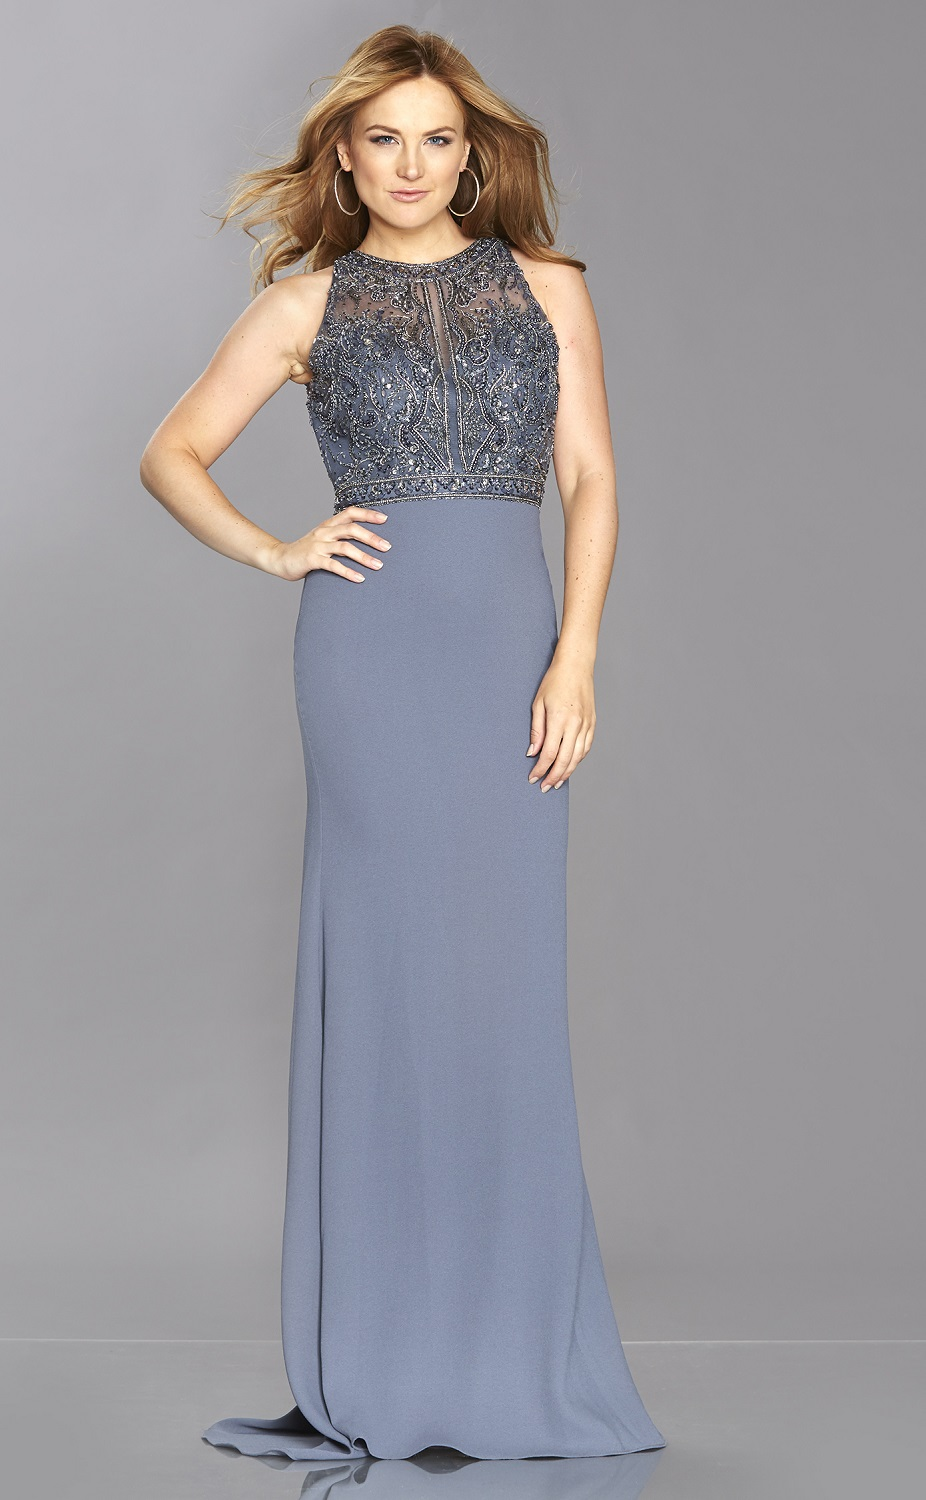 ab0868339e38 Sequinned, high neck, backless, crepe prom dress REDUCED at Ball ...